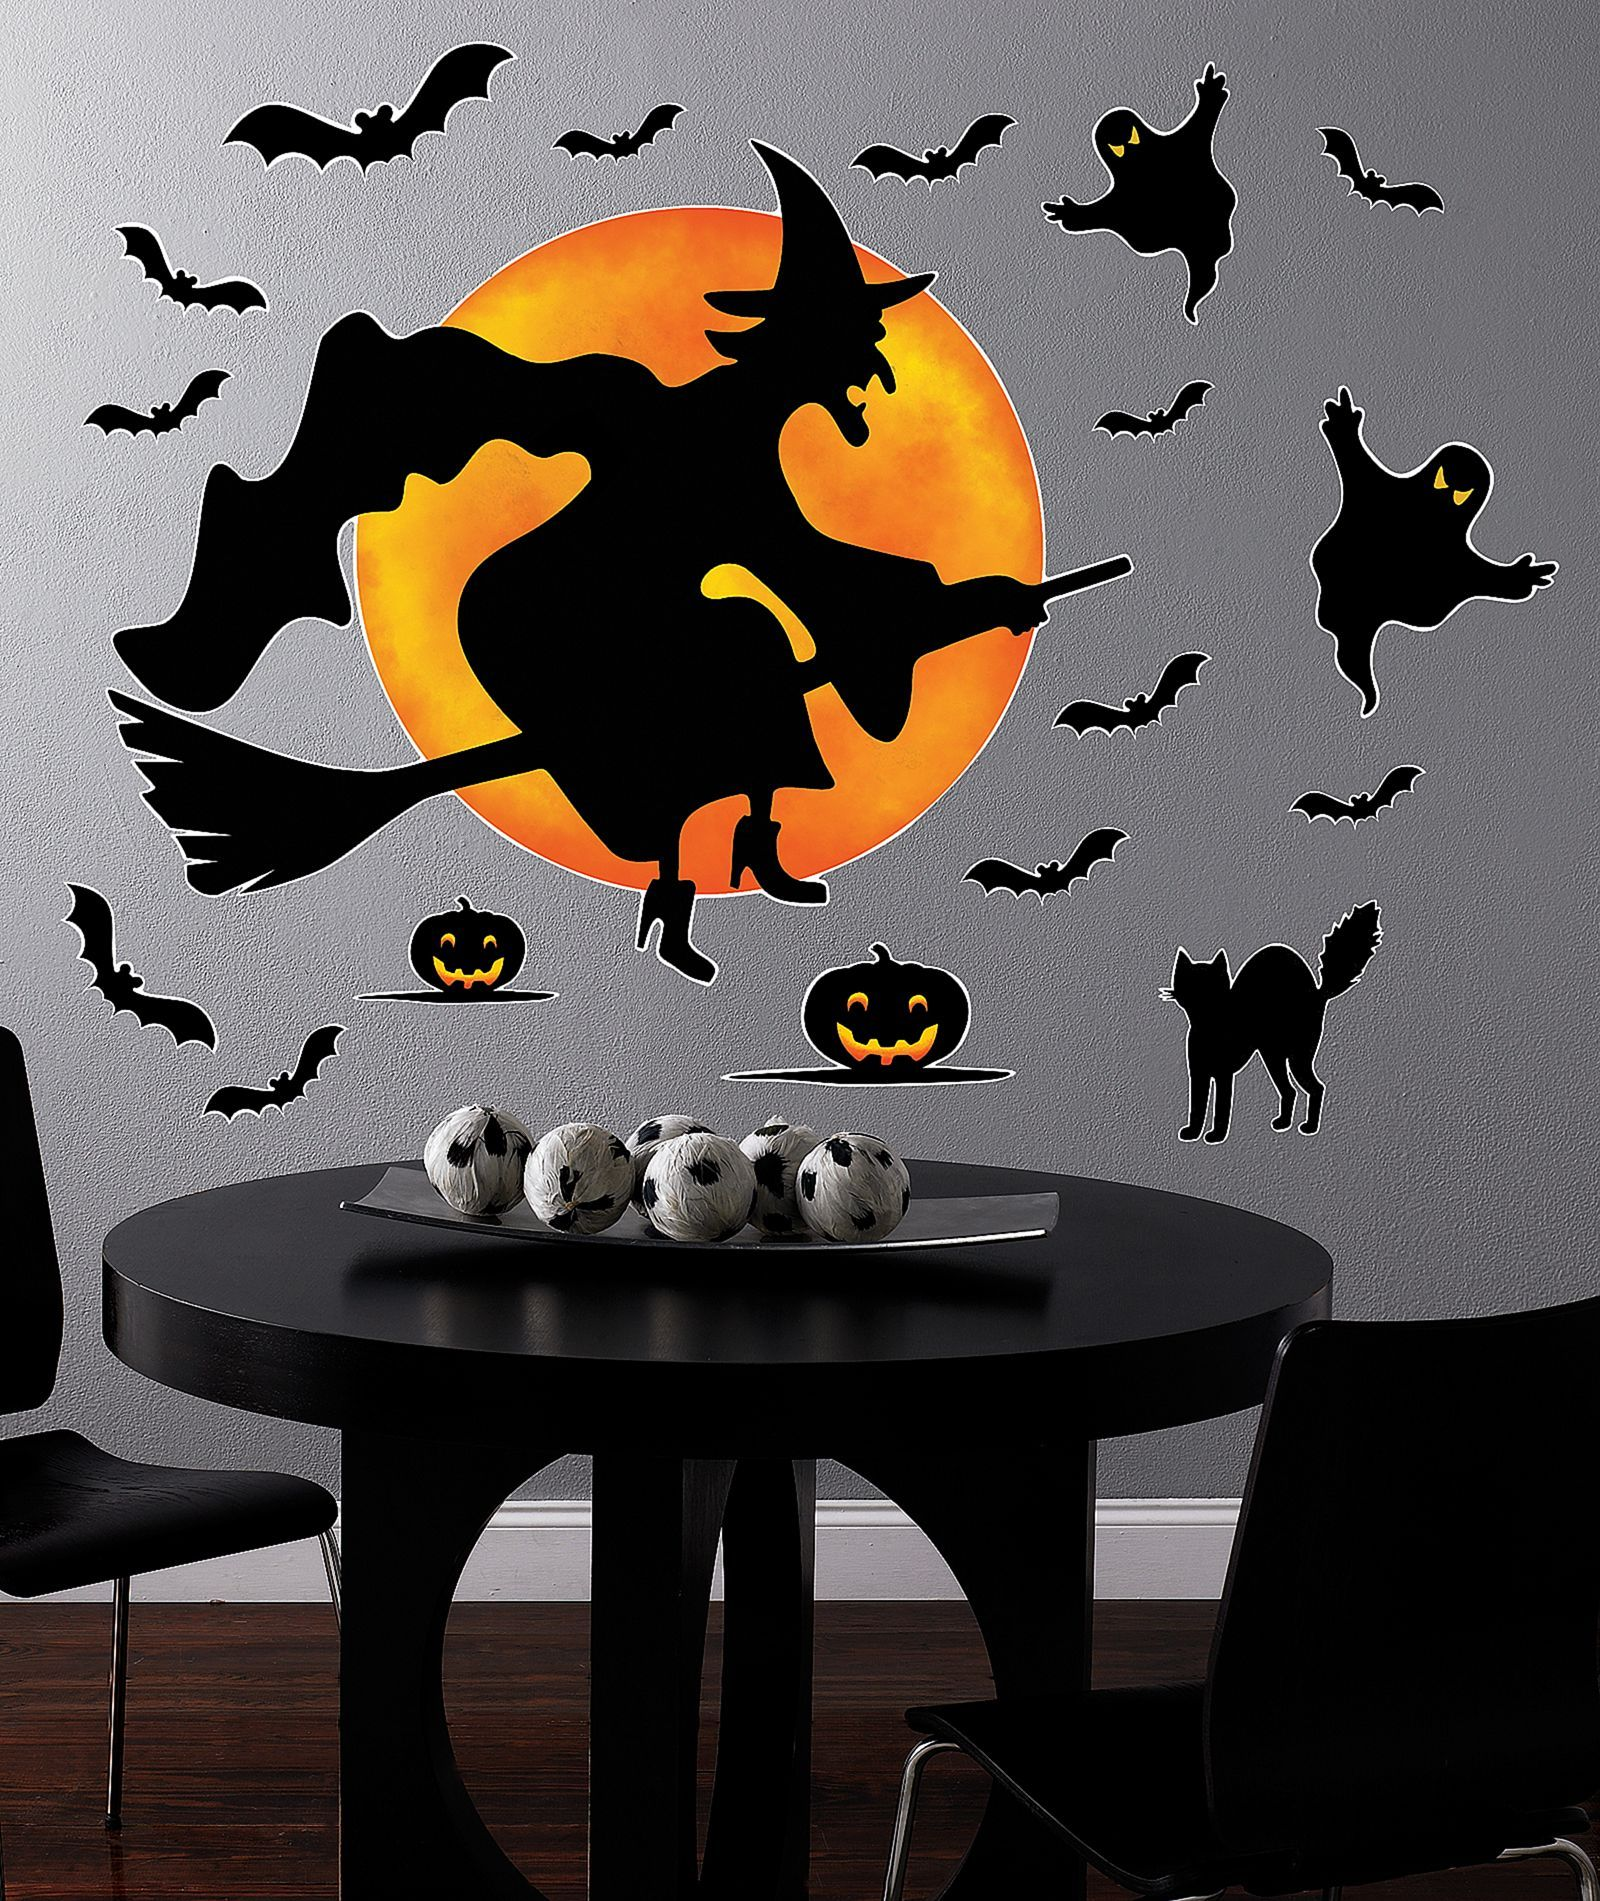 14 Most Wonderful Halloween Wall Decoration Ideas That Inspire You